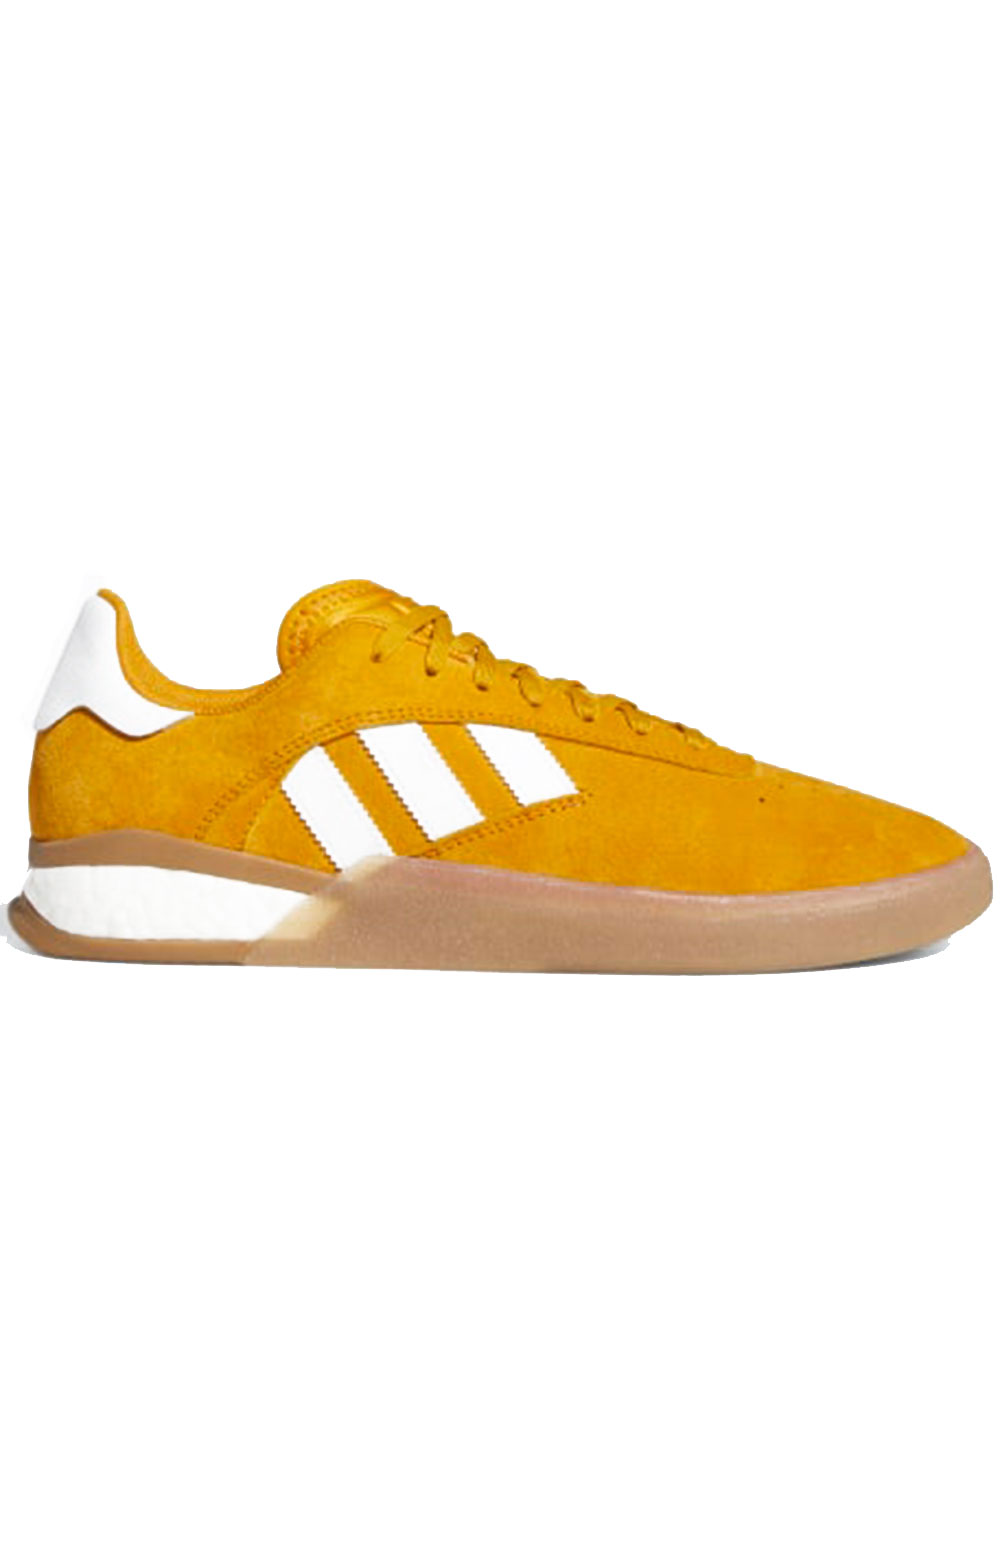 (EE7669) 3ST.004 Shoes - Yellow